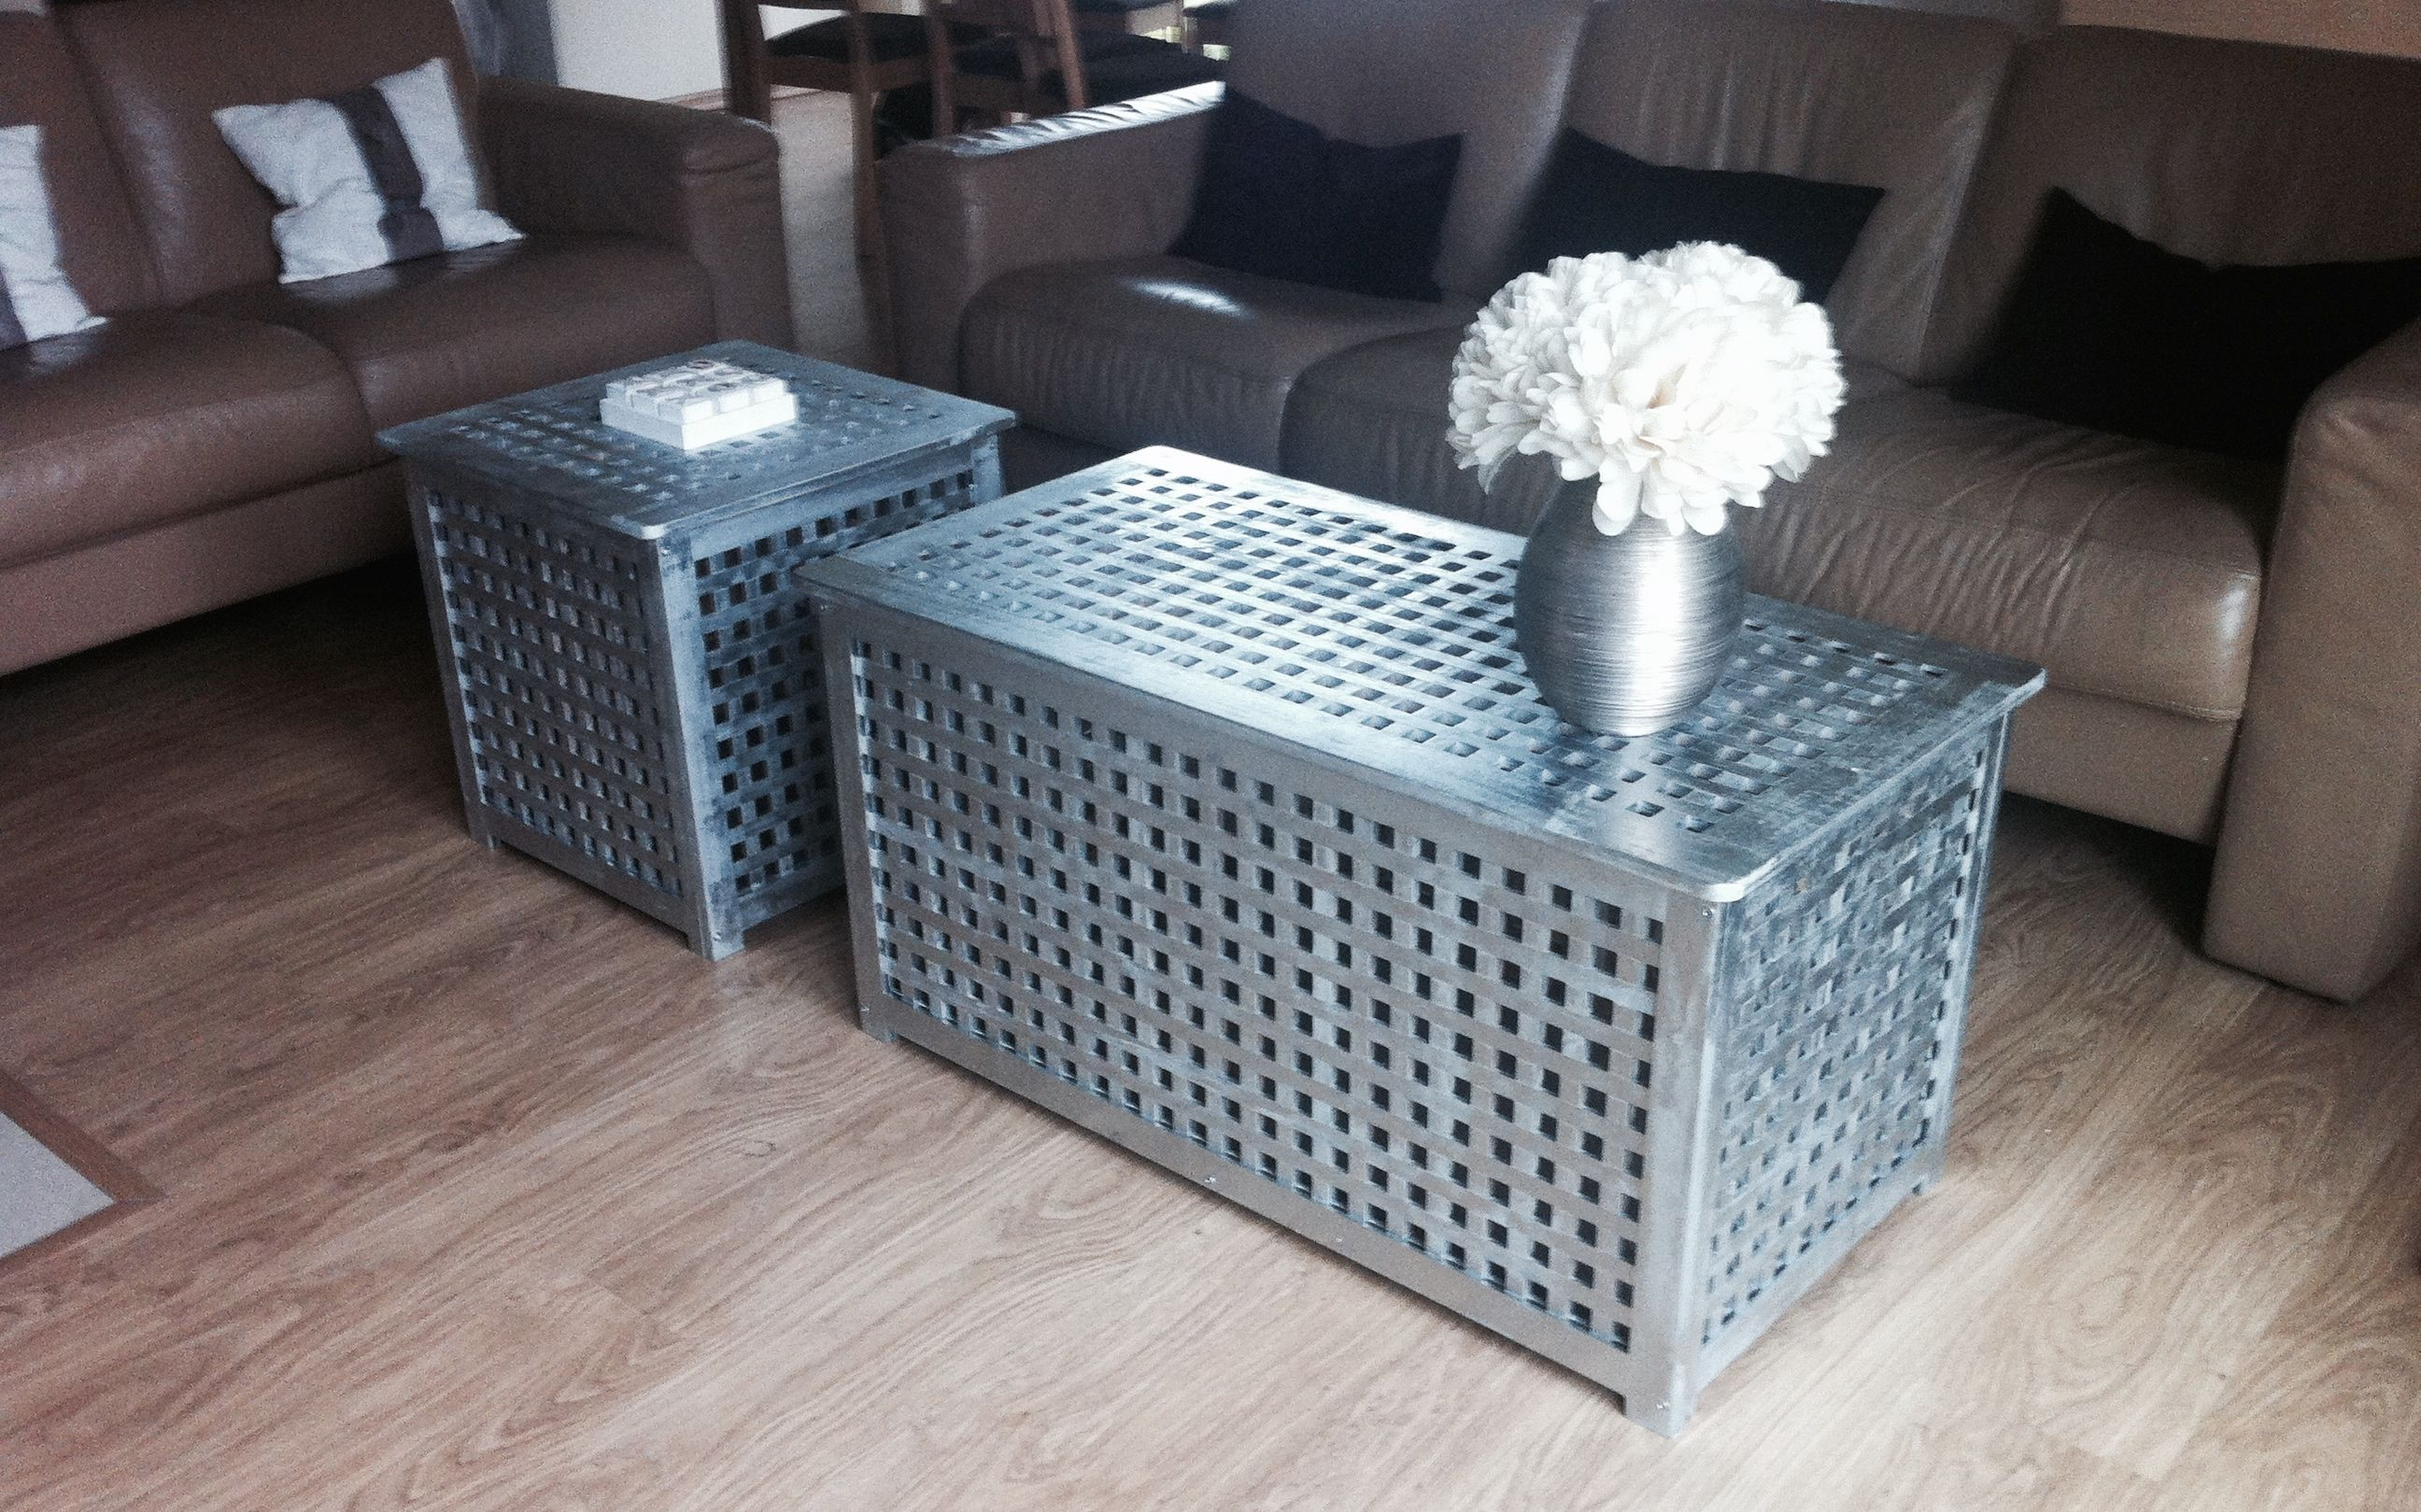 Ikea Hol Coffe Table Covered With Silver Metallic Paint Ikea Patio Furniture Ikea Patio Furniture Hacks [ 1936 x 2592 Pixel ]